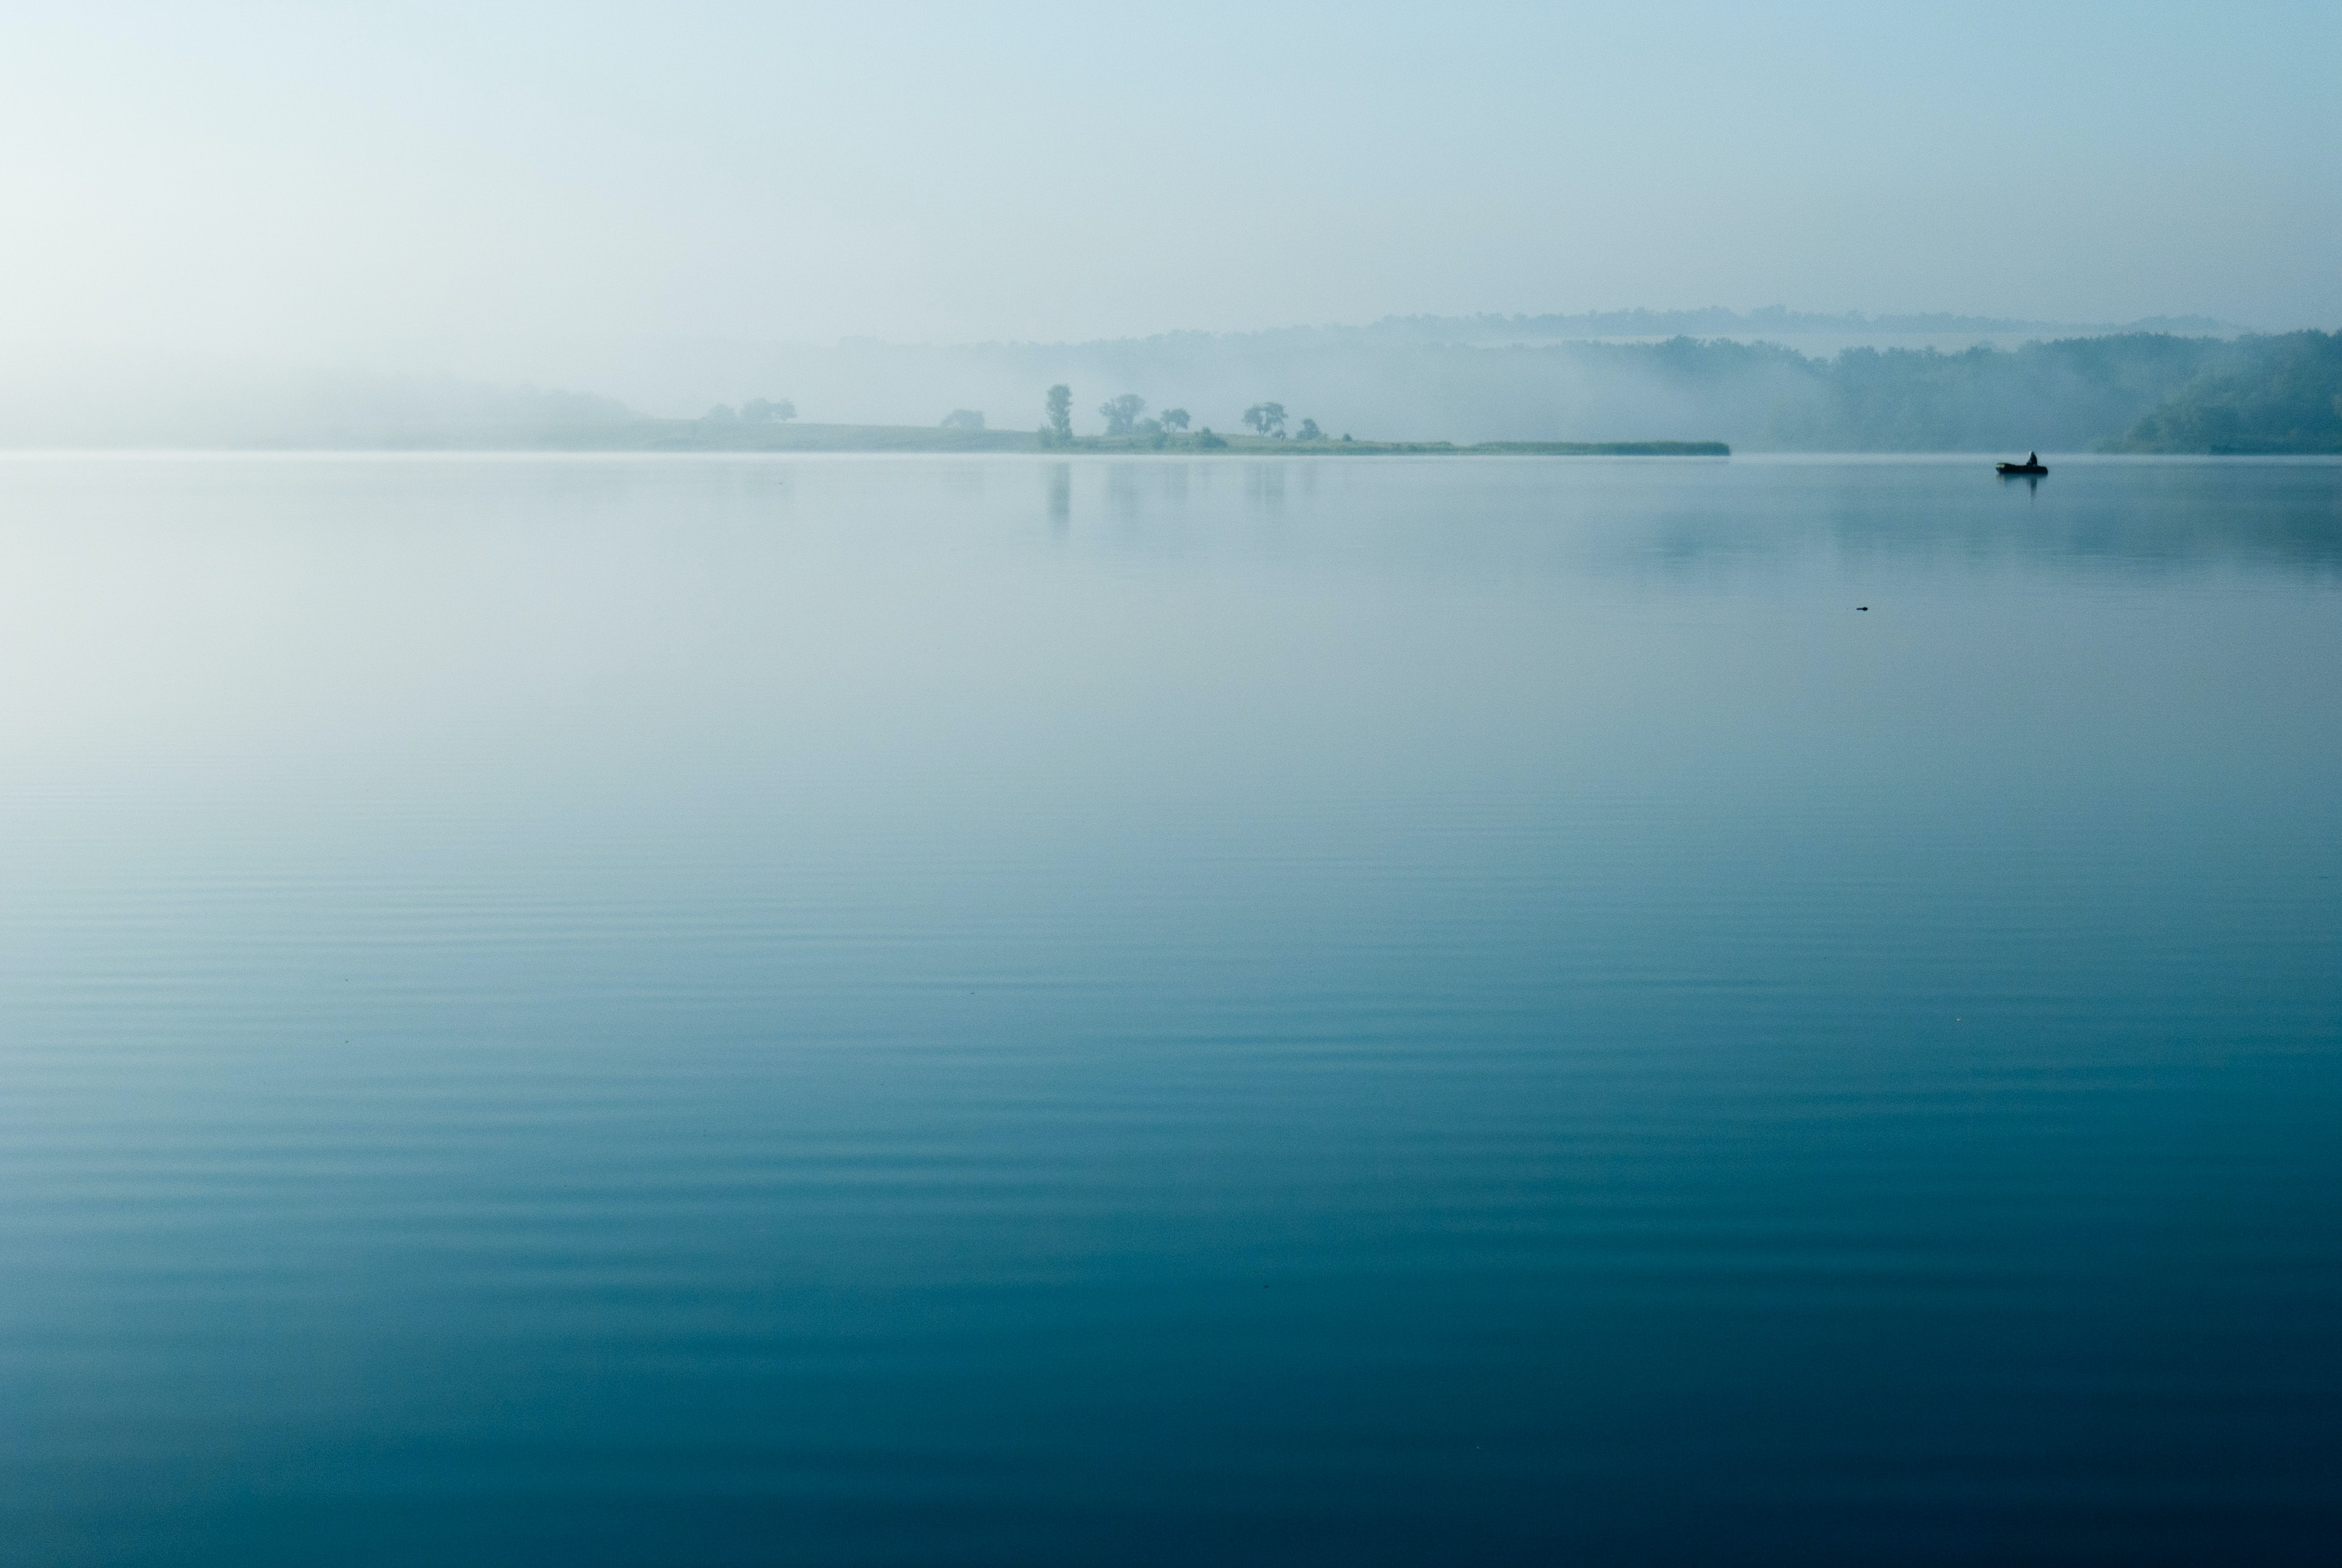 Boats sit in calm blue waters on a misty evening